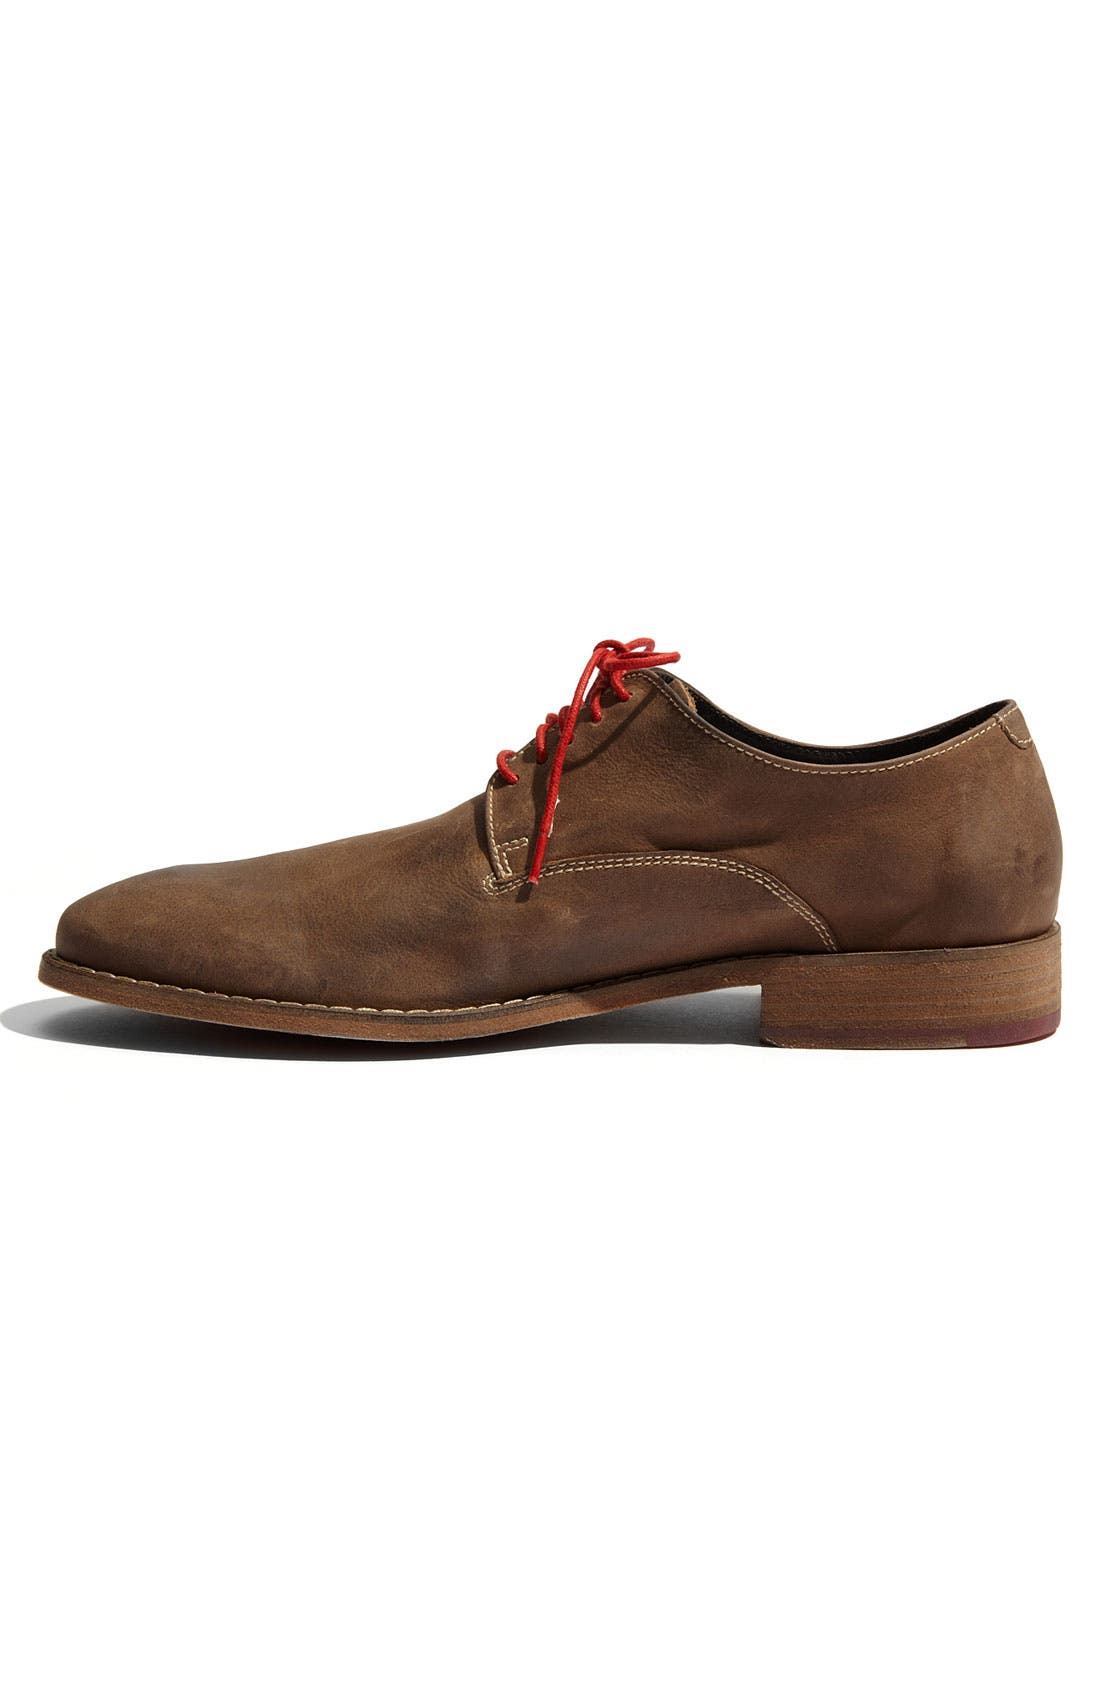 Alternate Image 2  - Cole Haan 'Air Colton' Casual Oxford   (Men)